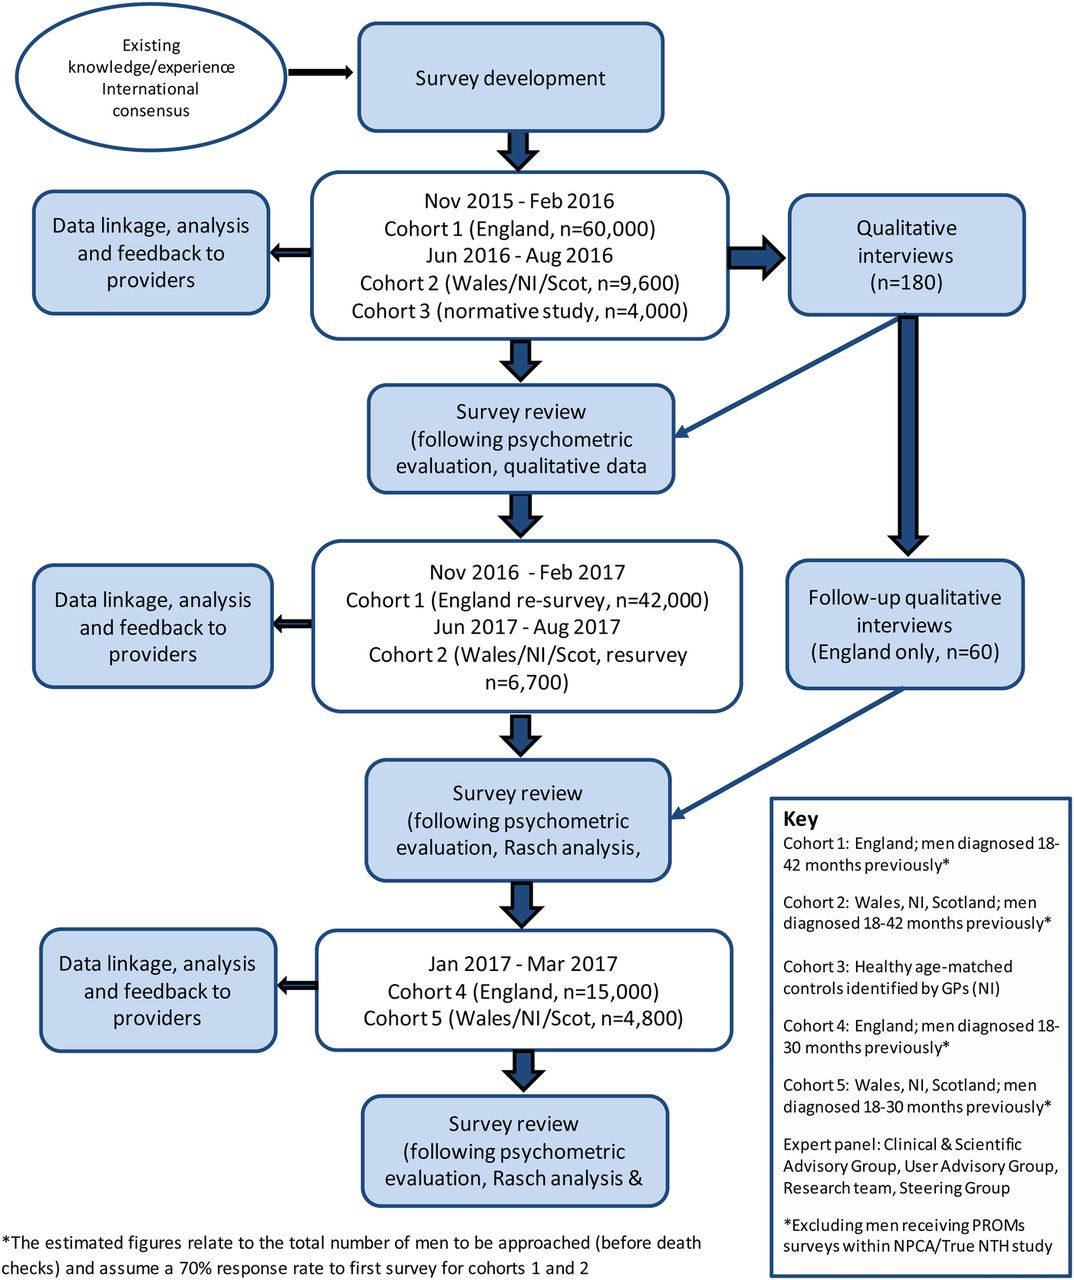 Life after prostate cancer diagnosis: protocol for a UK-wide patient on